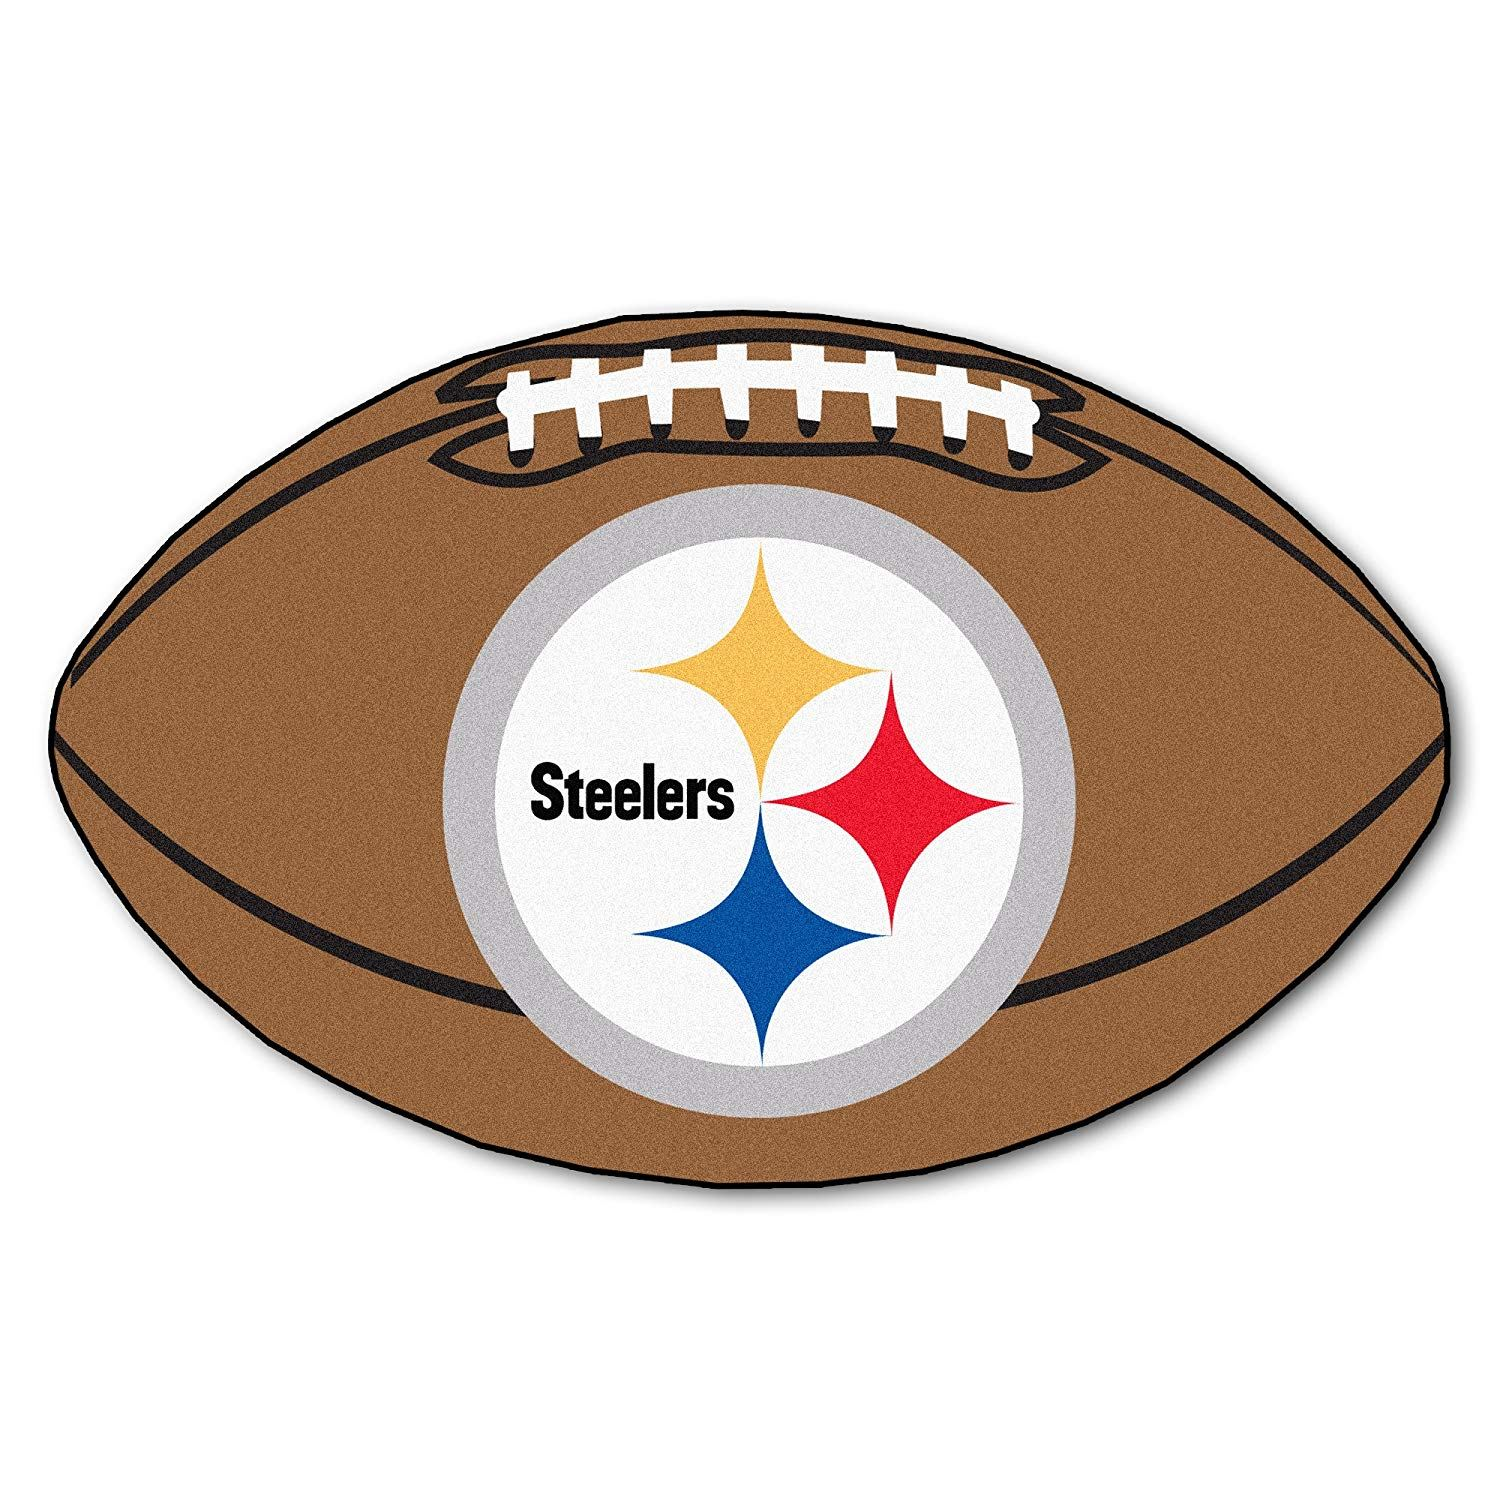 Steelers football images clipart image library Steelers football clipart 2 » Clipart Portal image library